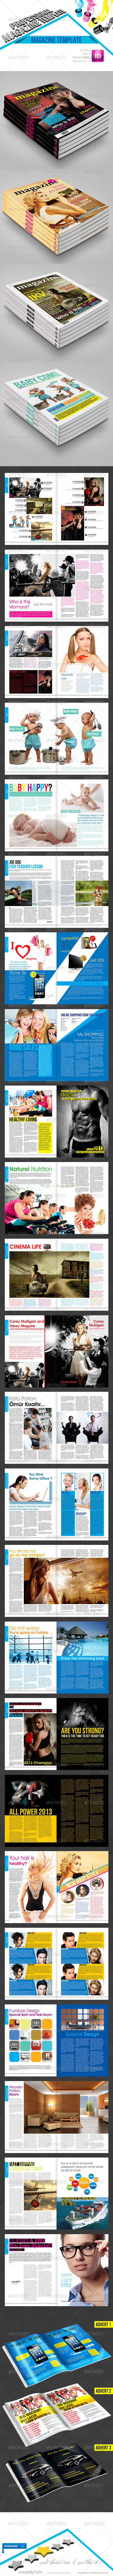 Magazine 50 Pages & 4 Covers Template